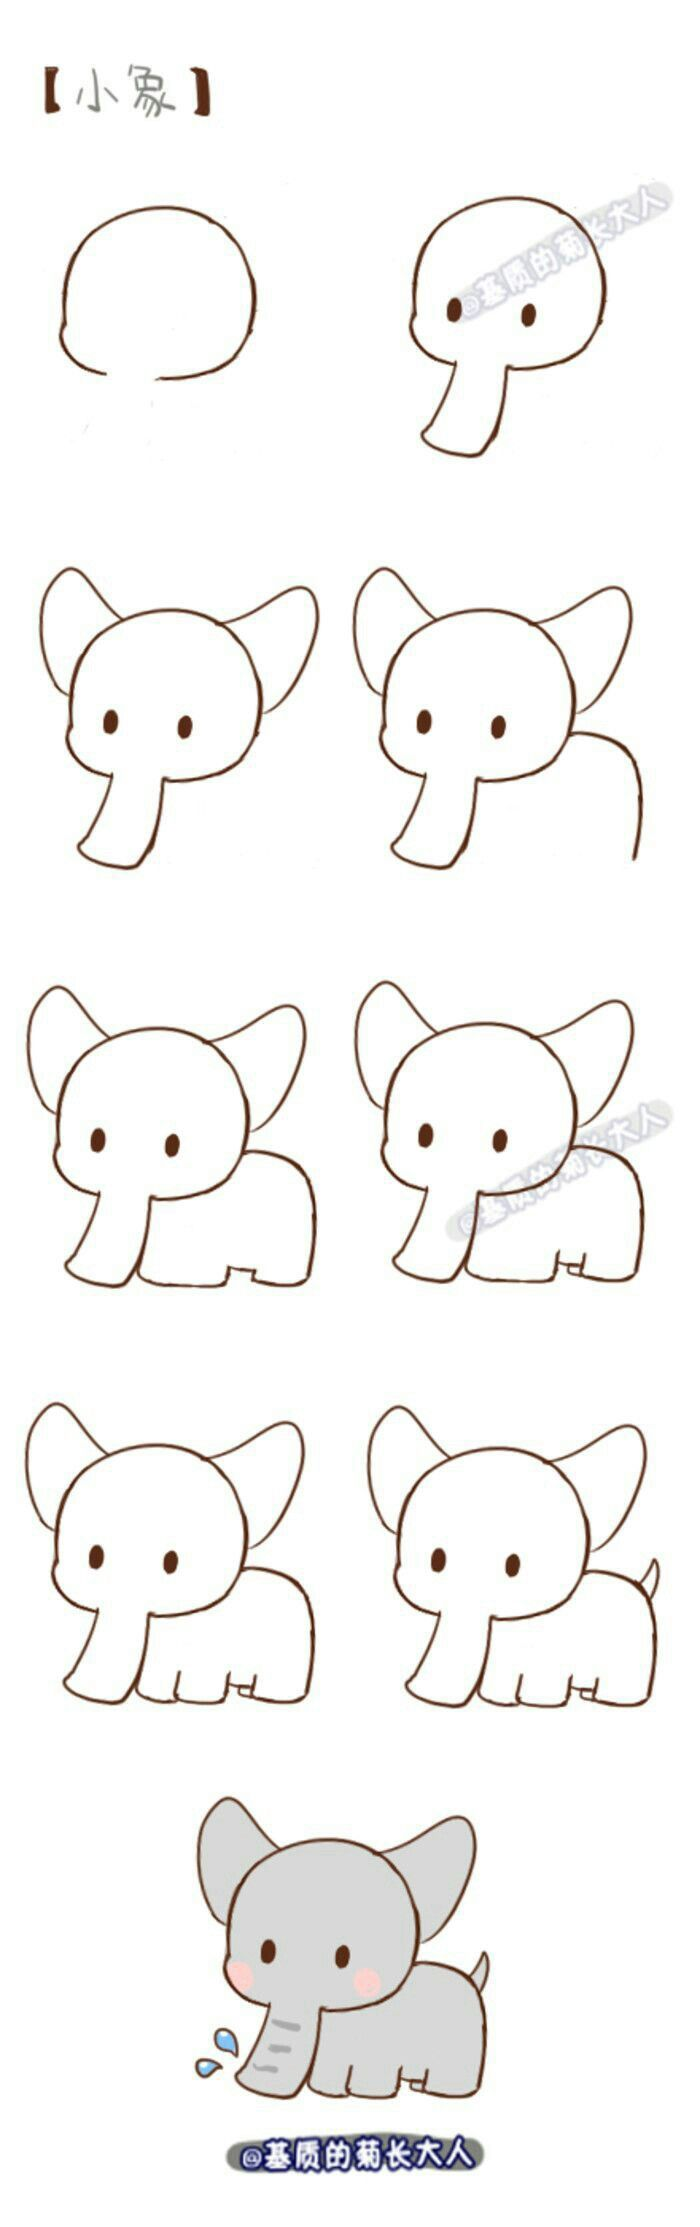 how to draw a baby elephant drawing in 2019 drawings easy drawings cute drawings. Black Bedroom Furniture Sets. Home Design Ideas